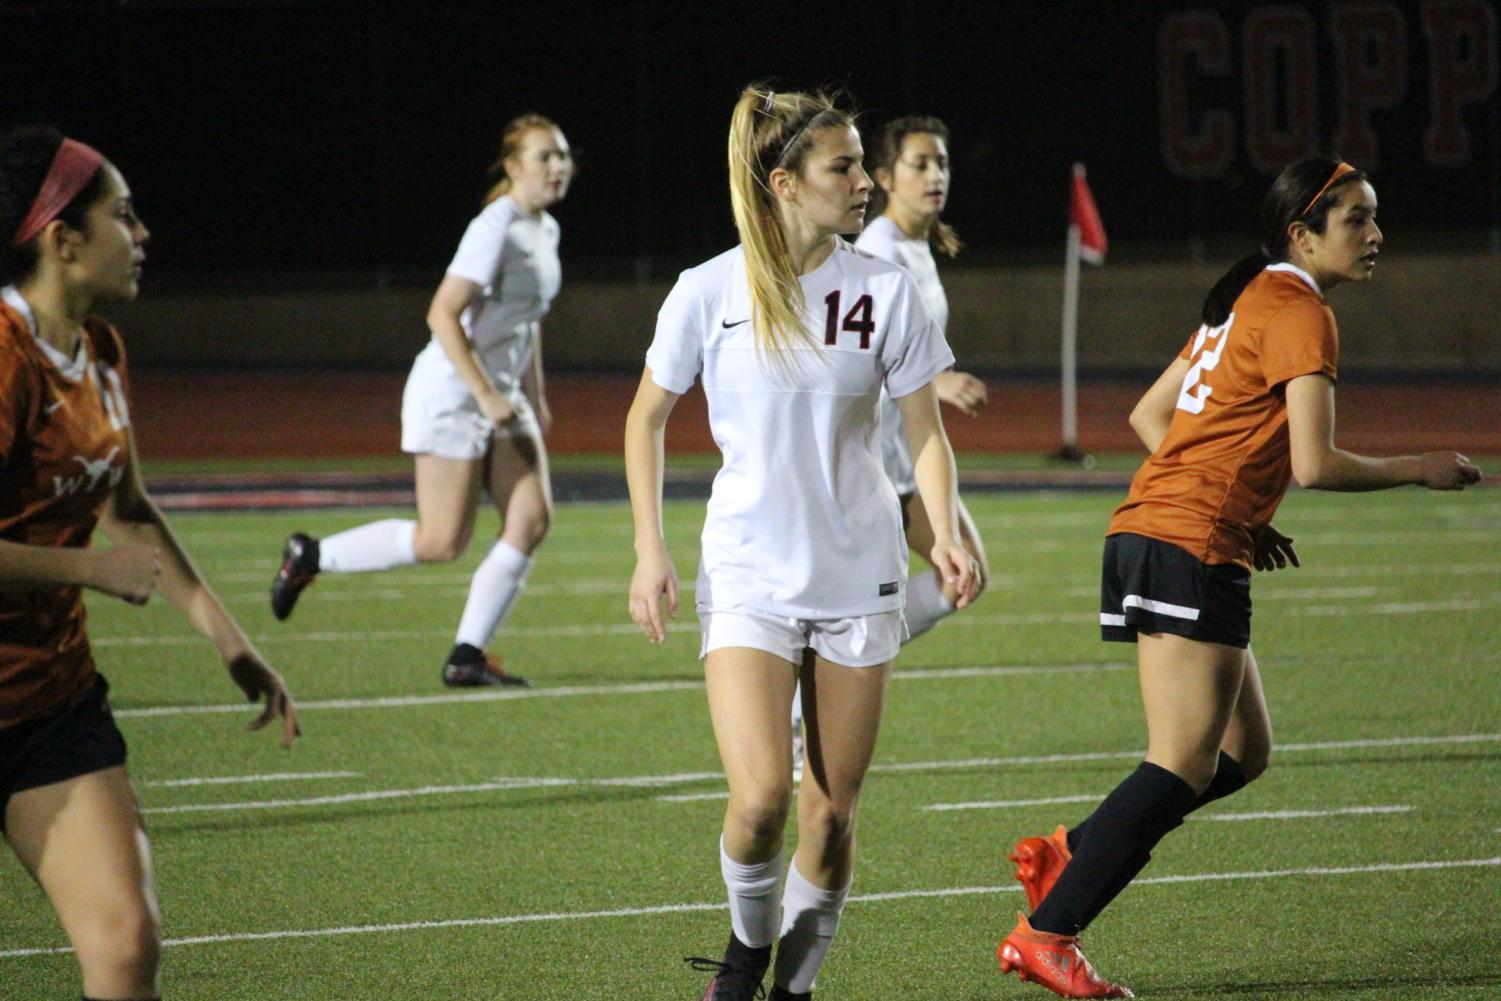 Coppell+High+School+senior+Addison+Ramirez+watches+the+ball+during+the+first+half+of+Tuesday+nights+home+game+at+Buddy+Echols+Field.+The+varsity+girls+soccer+team+played+against+WT+White+taking+the+win+with+a+score+of+5-1.